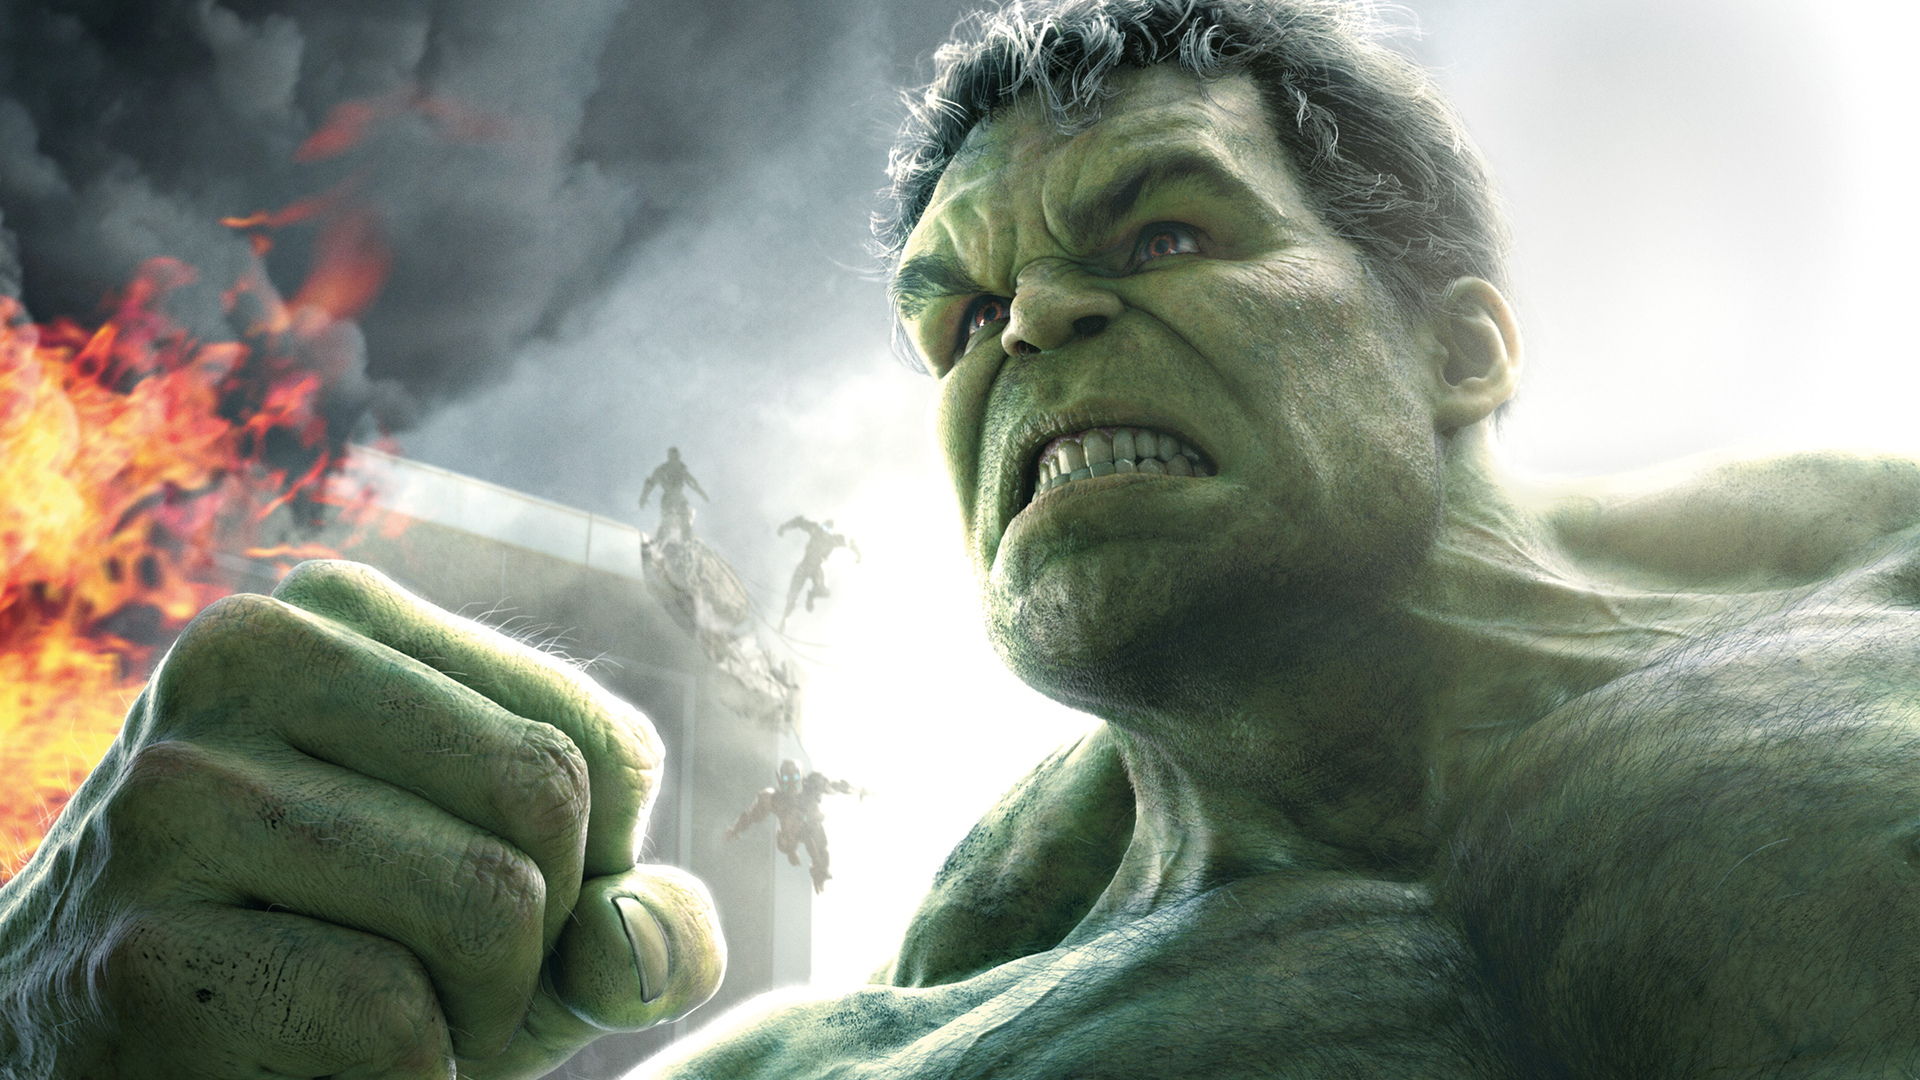 1920x1080 hulk in avangers laptop full hd 1080p hd 4k - Hulk hd images free download ...